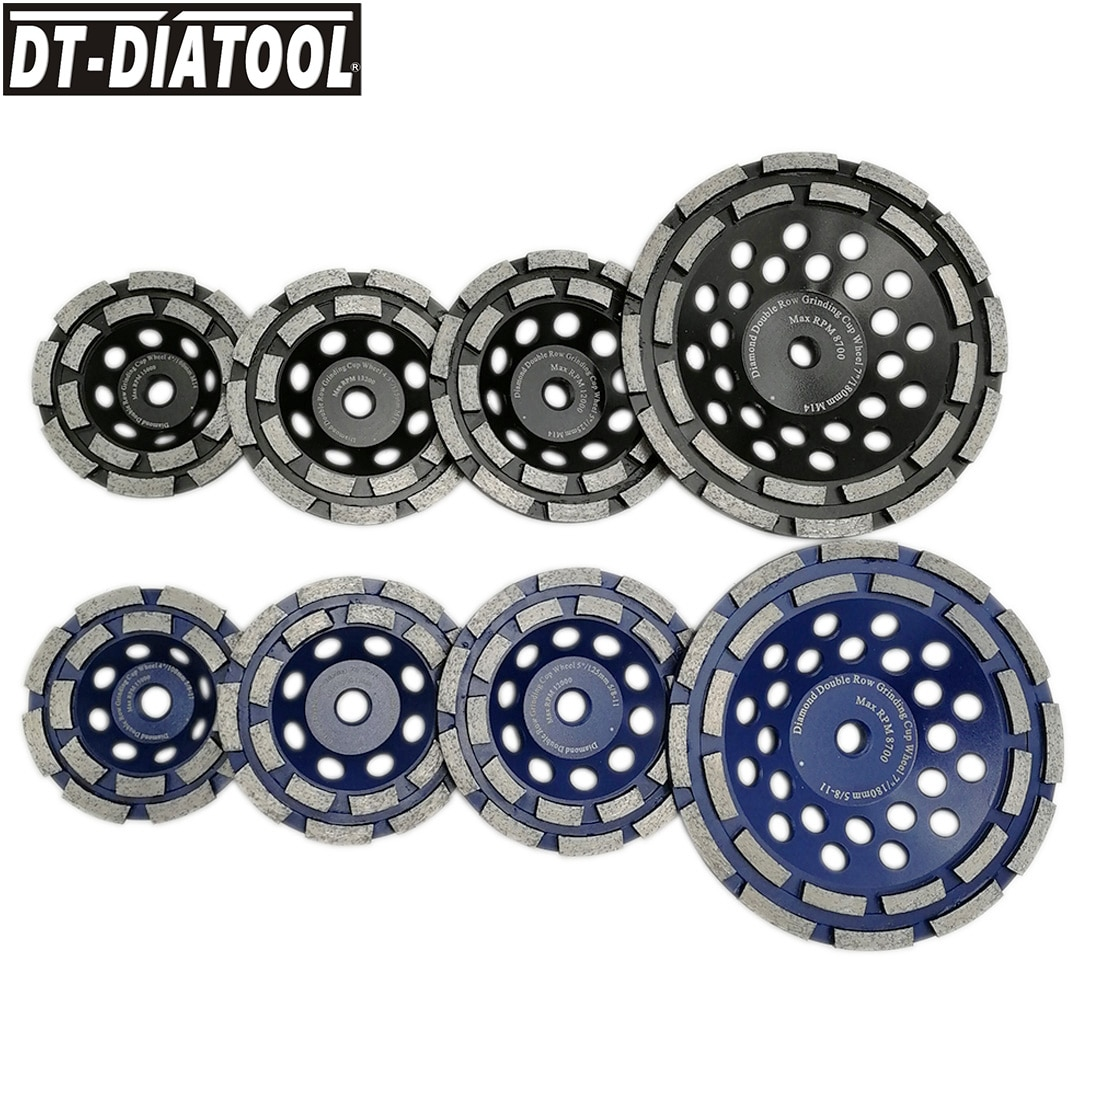 DT-DIATOOL 1pc Diamond Double Row Cup Grinding Wheel for Concrete hard Stone Granite Marble M14 or 5/8-11 Dia 100/115/125/180mm